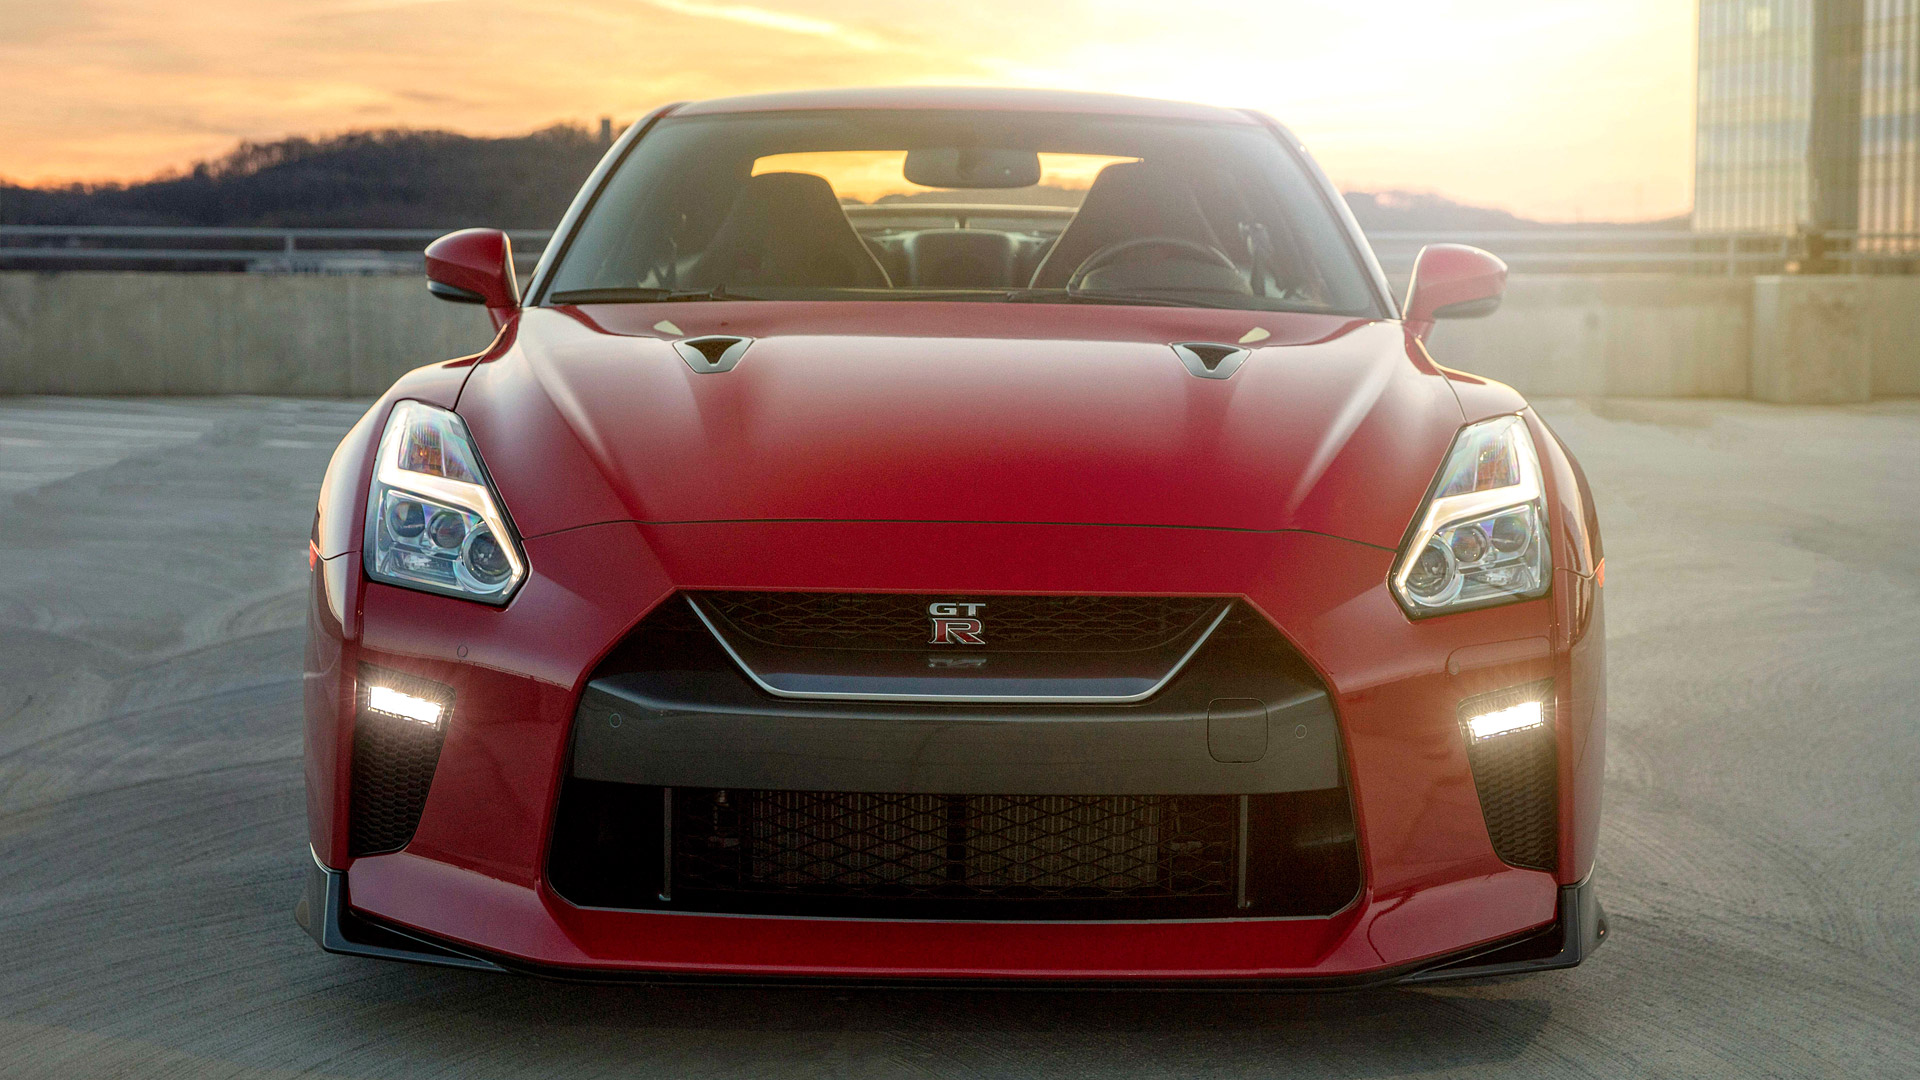 red nissan gtr front view wallpaper 71687